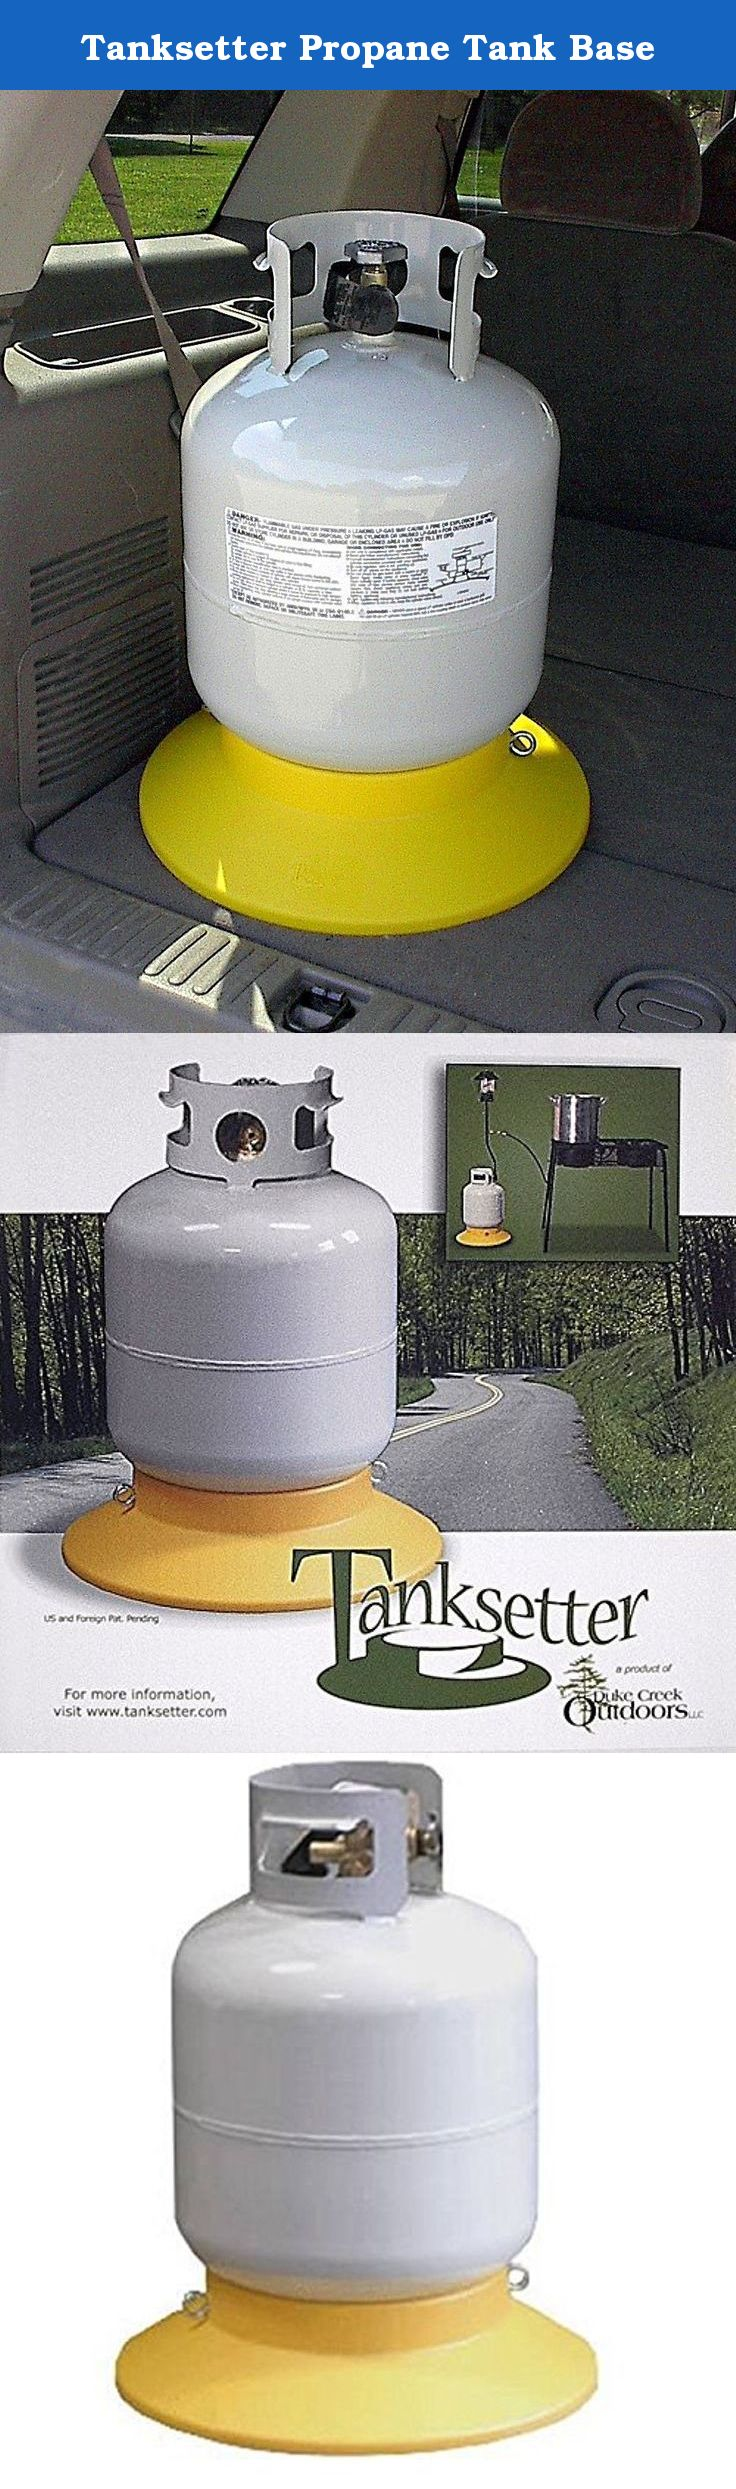 Tanksetter Propane Tank Base The Tanksetter Propane Tank Base Is An Inexpensive Way To Easily And Safely Transport Your Propane Propane Tank Propane Durable